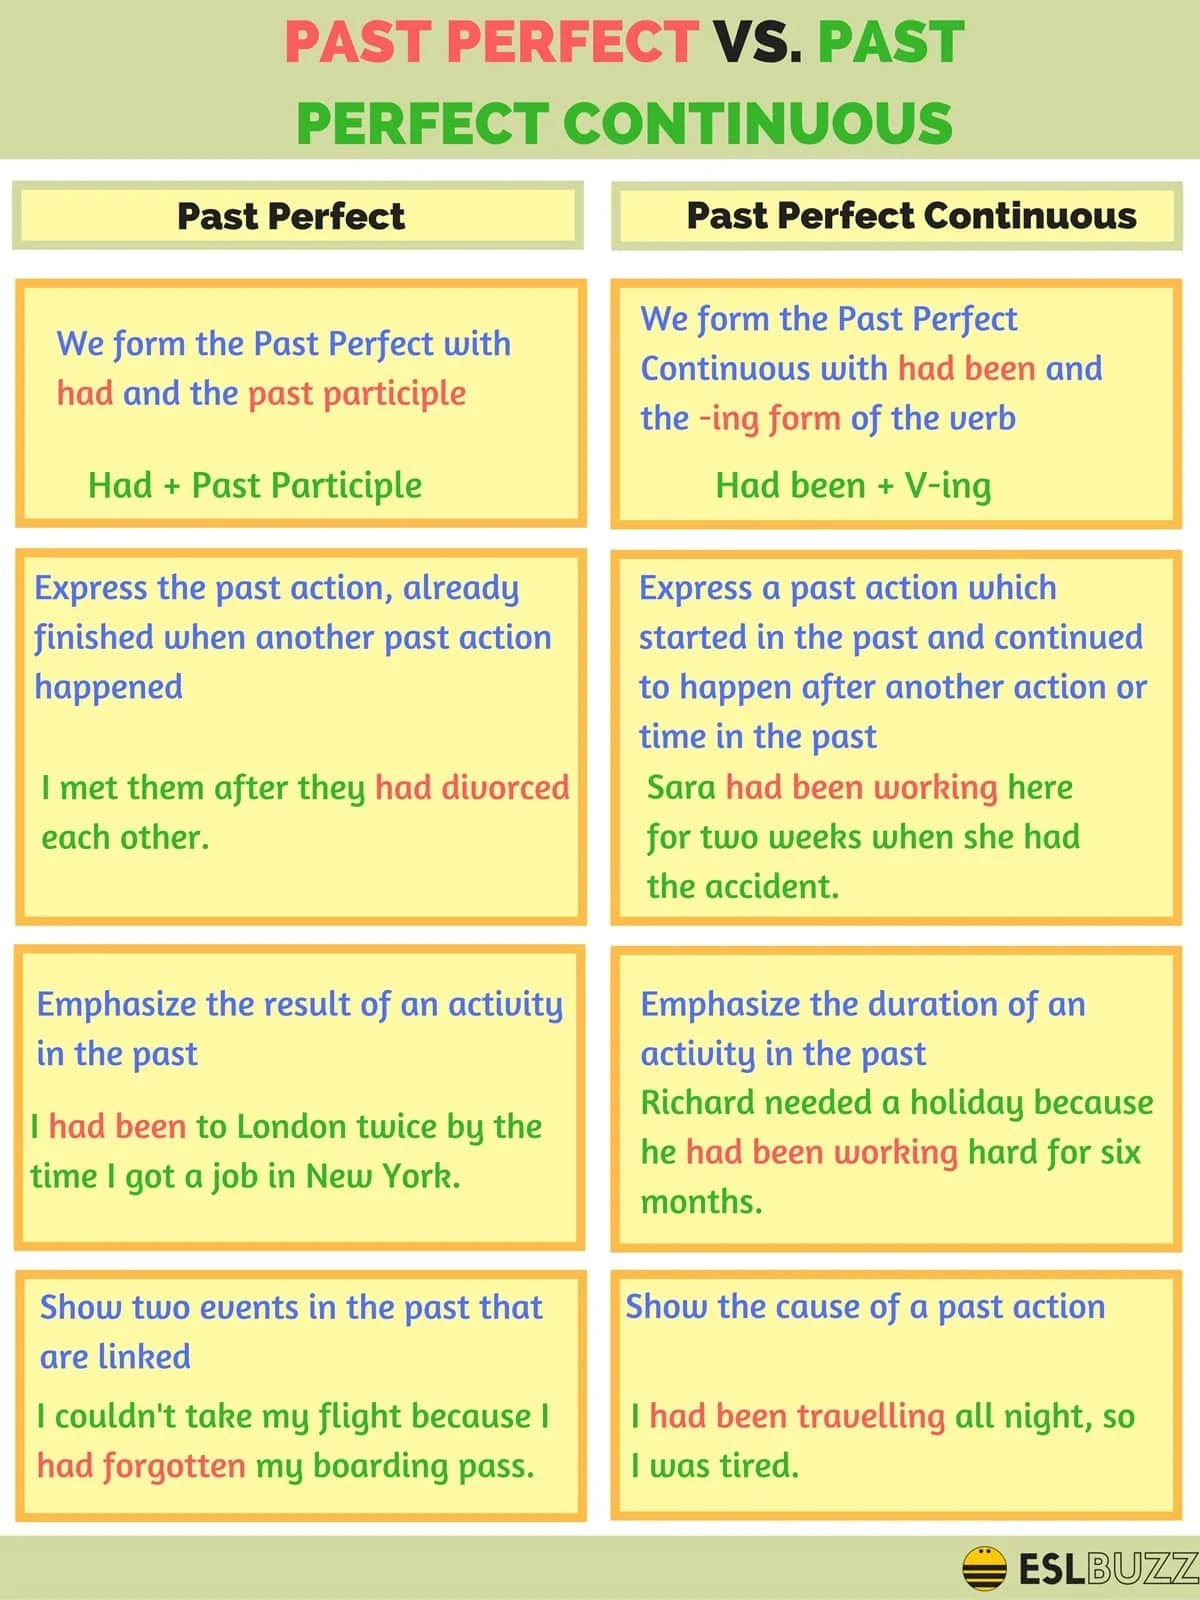 The Difference Between Past Perfect And Past Perfect